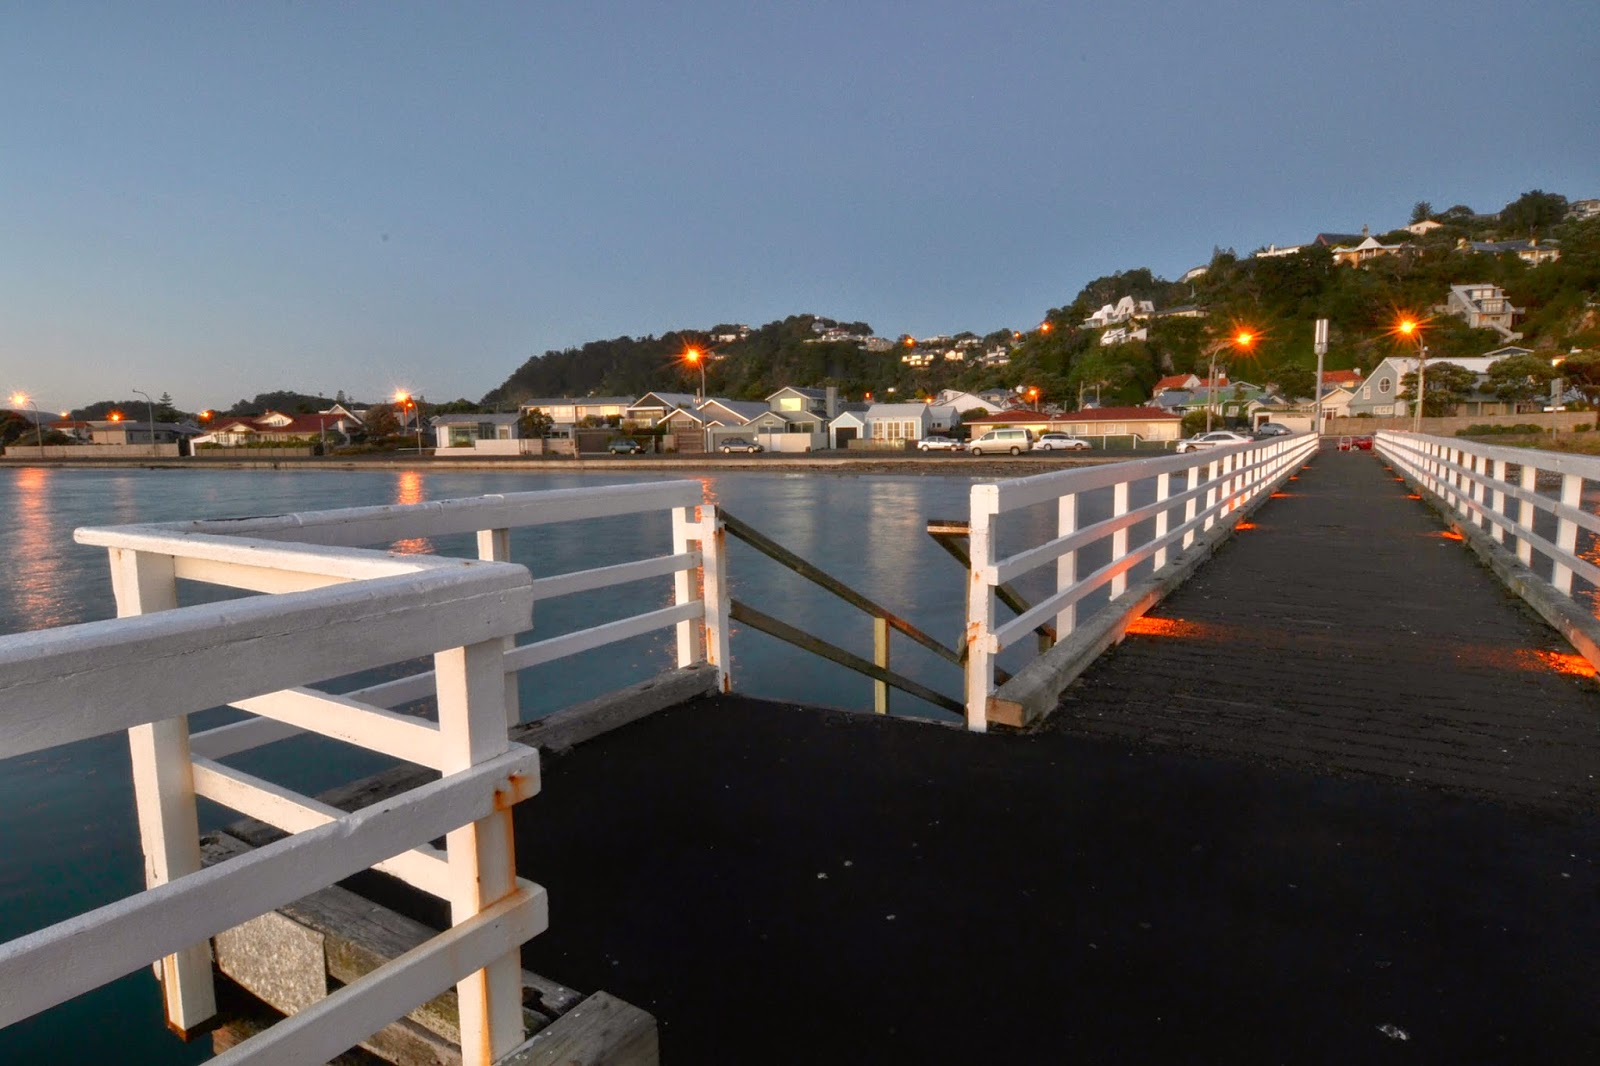 Seatoun from the Pier